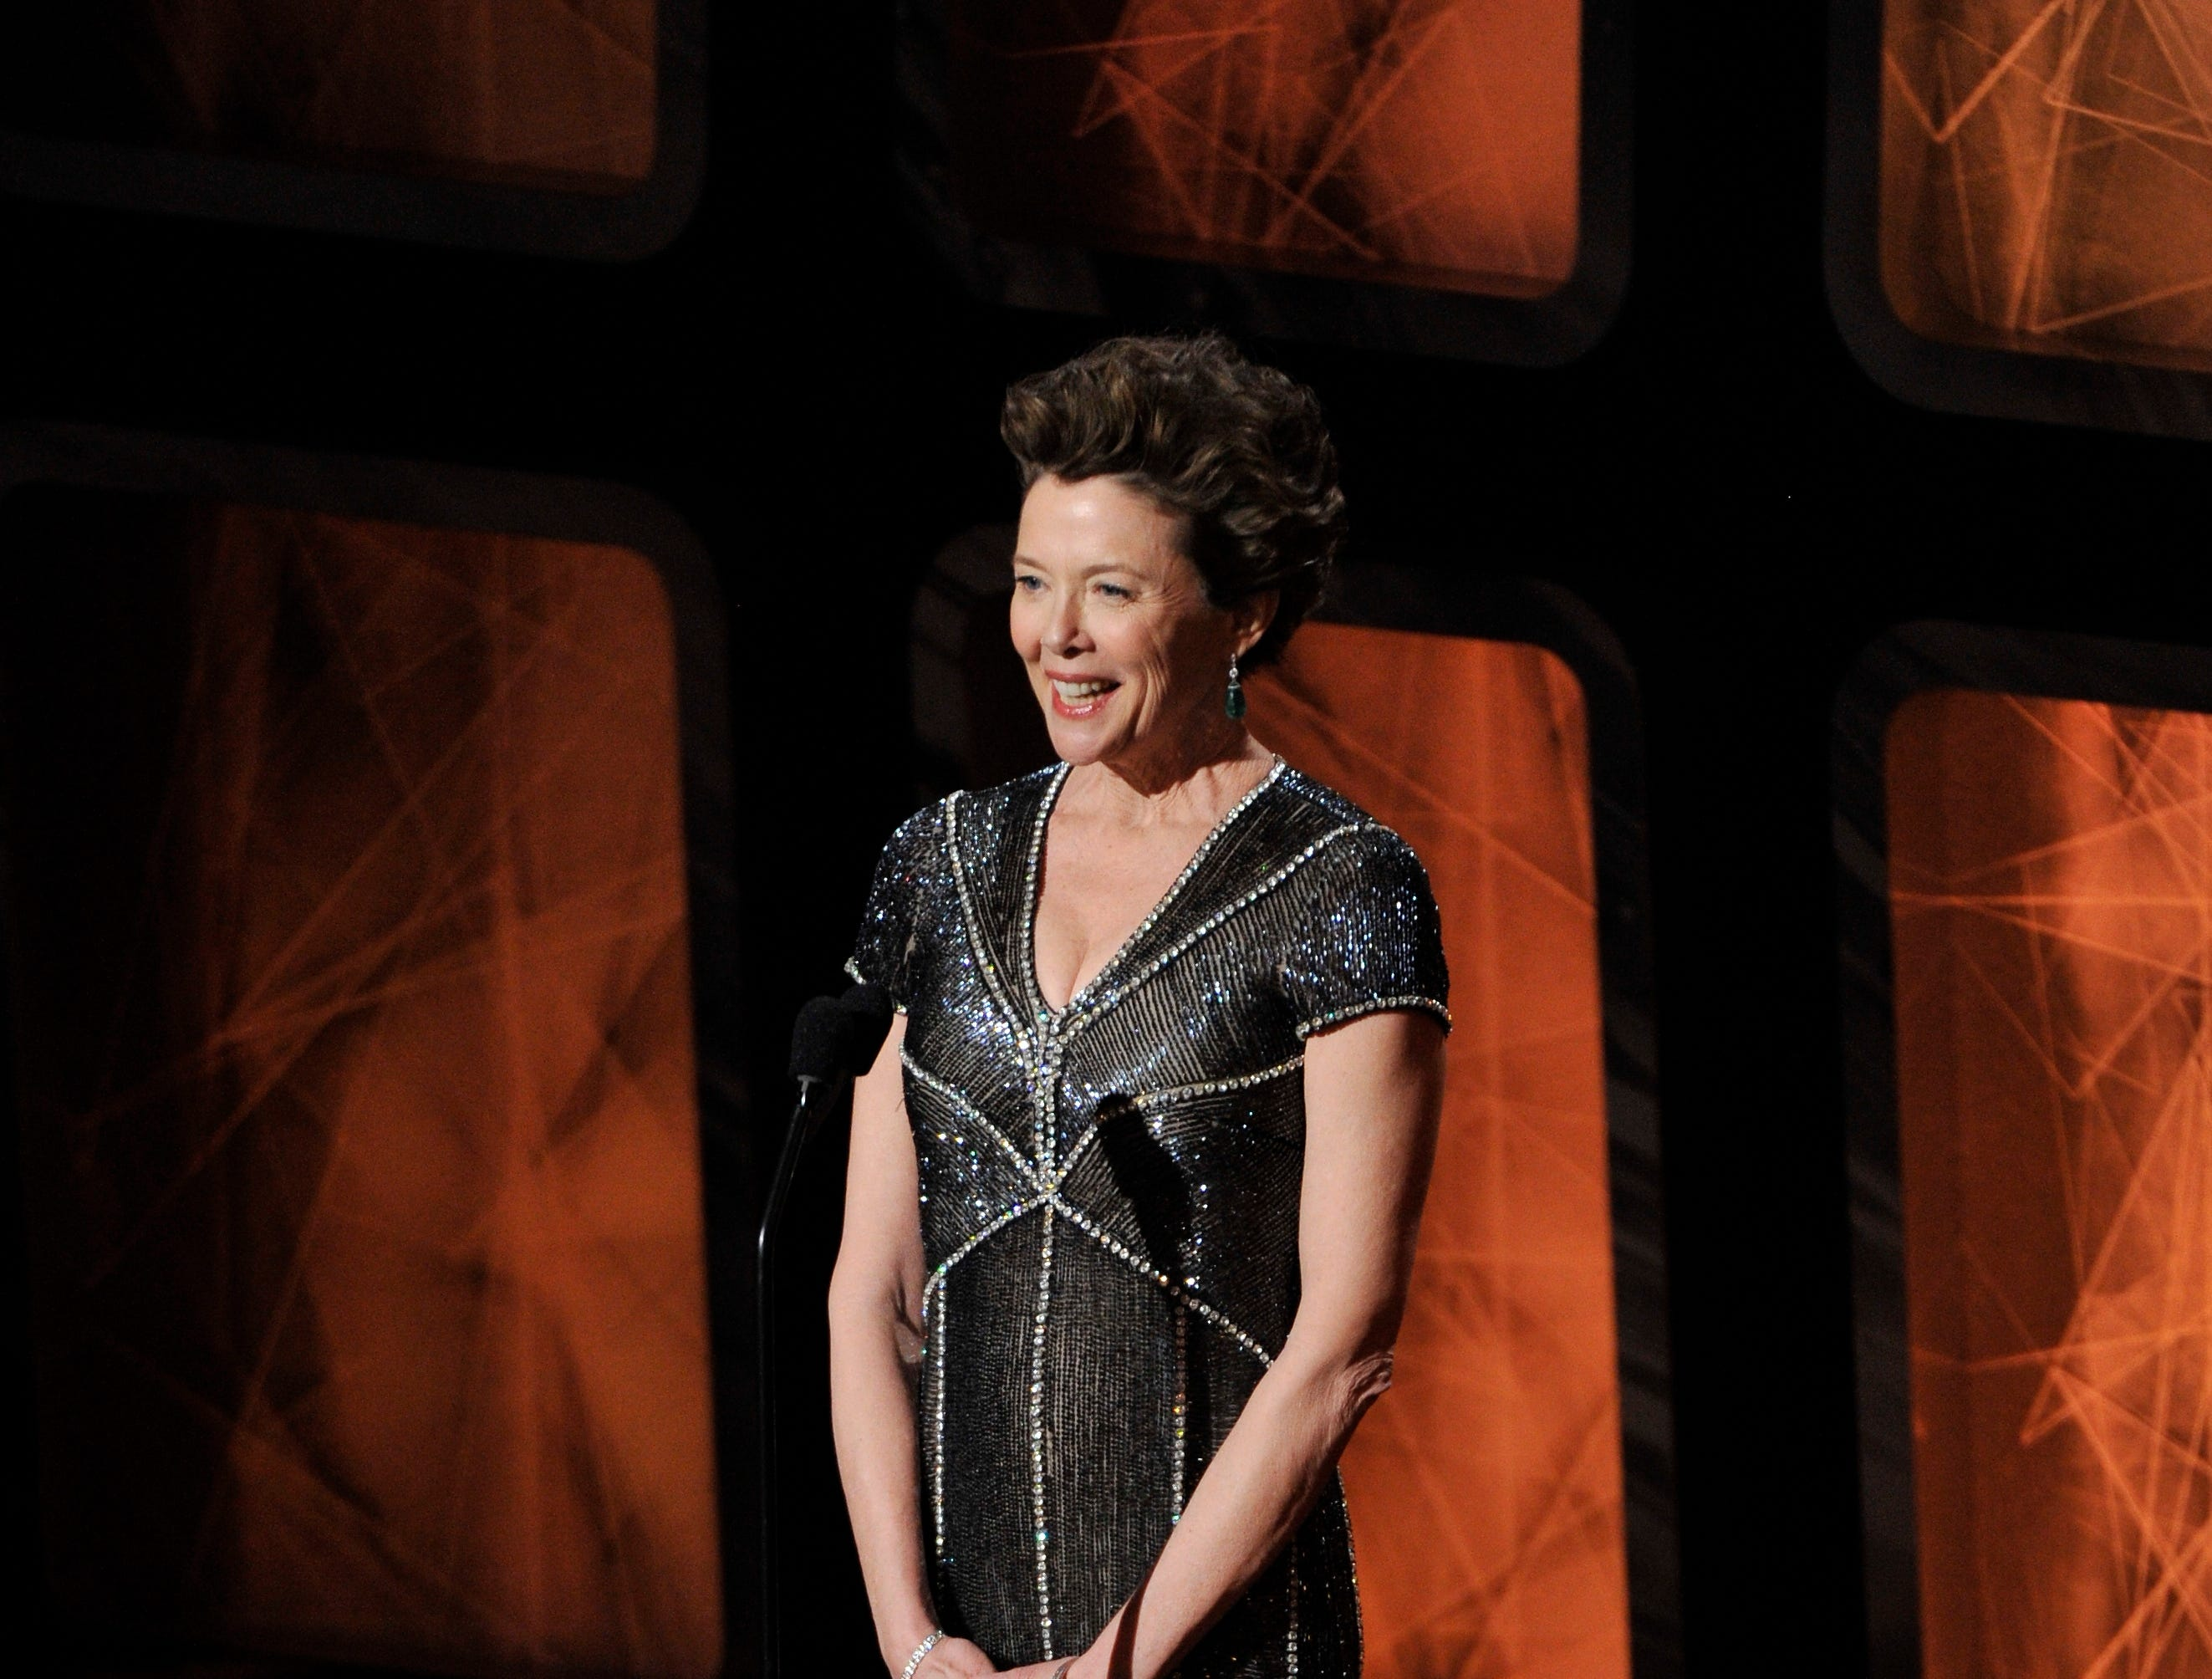 ORG XMIT: RD 39849 2011 OSCARS 2/25/2011  2/27/11 8:05:54 PM -- Hollywood, CA, U.S.A  -- Annette Bening on stage at the 83rd Annual Academy Awards at the Kodak Theatre.   Photo by Robert Deutsch, USA TODAY Staff  [Via MerlinFTP Drop]